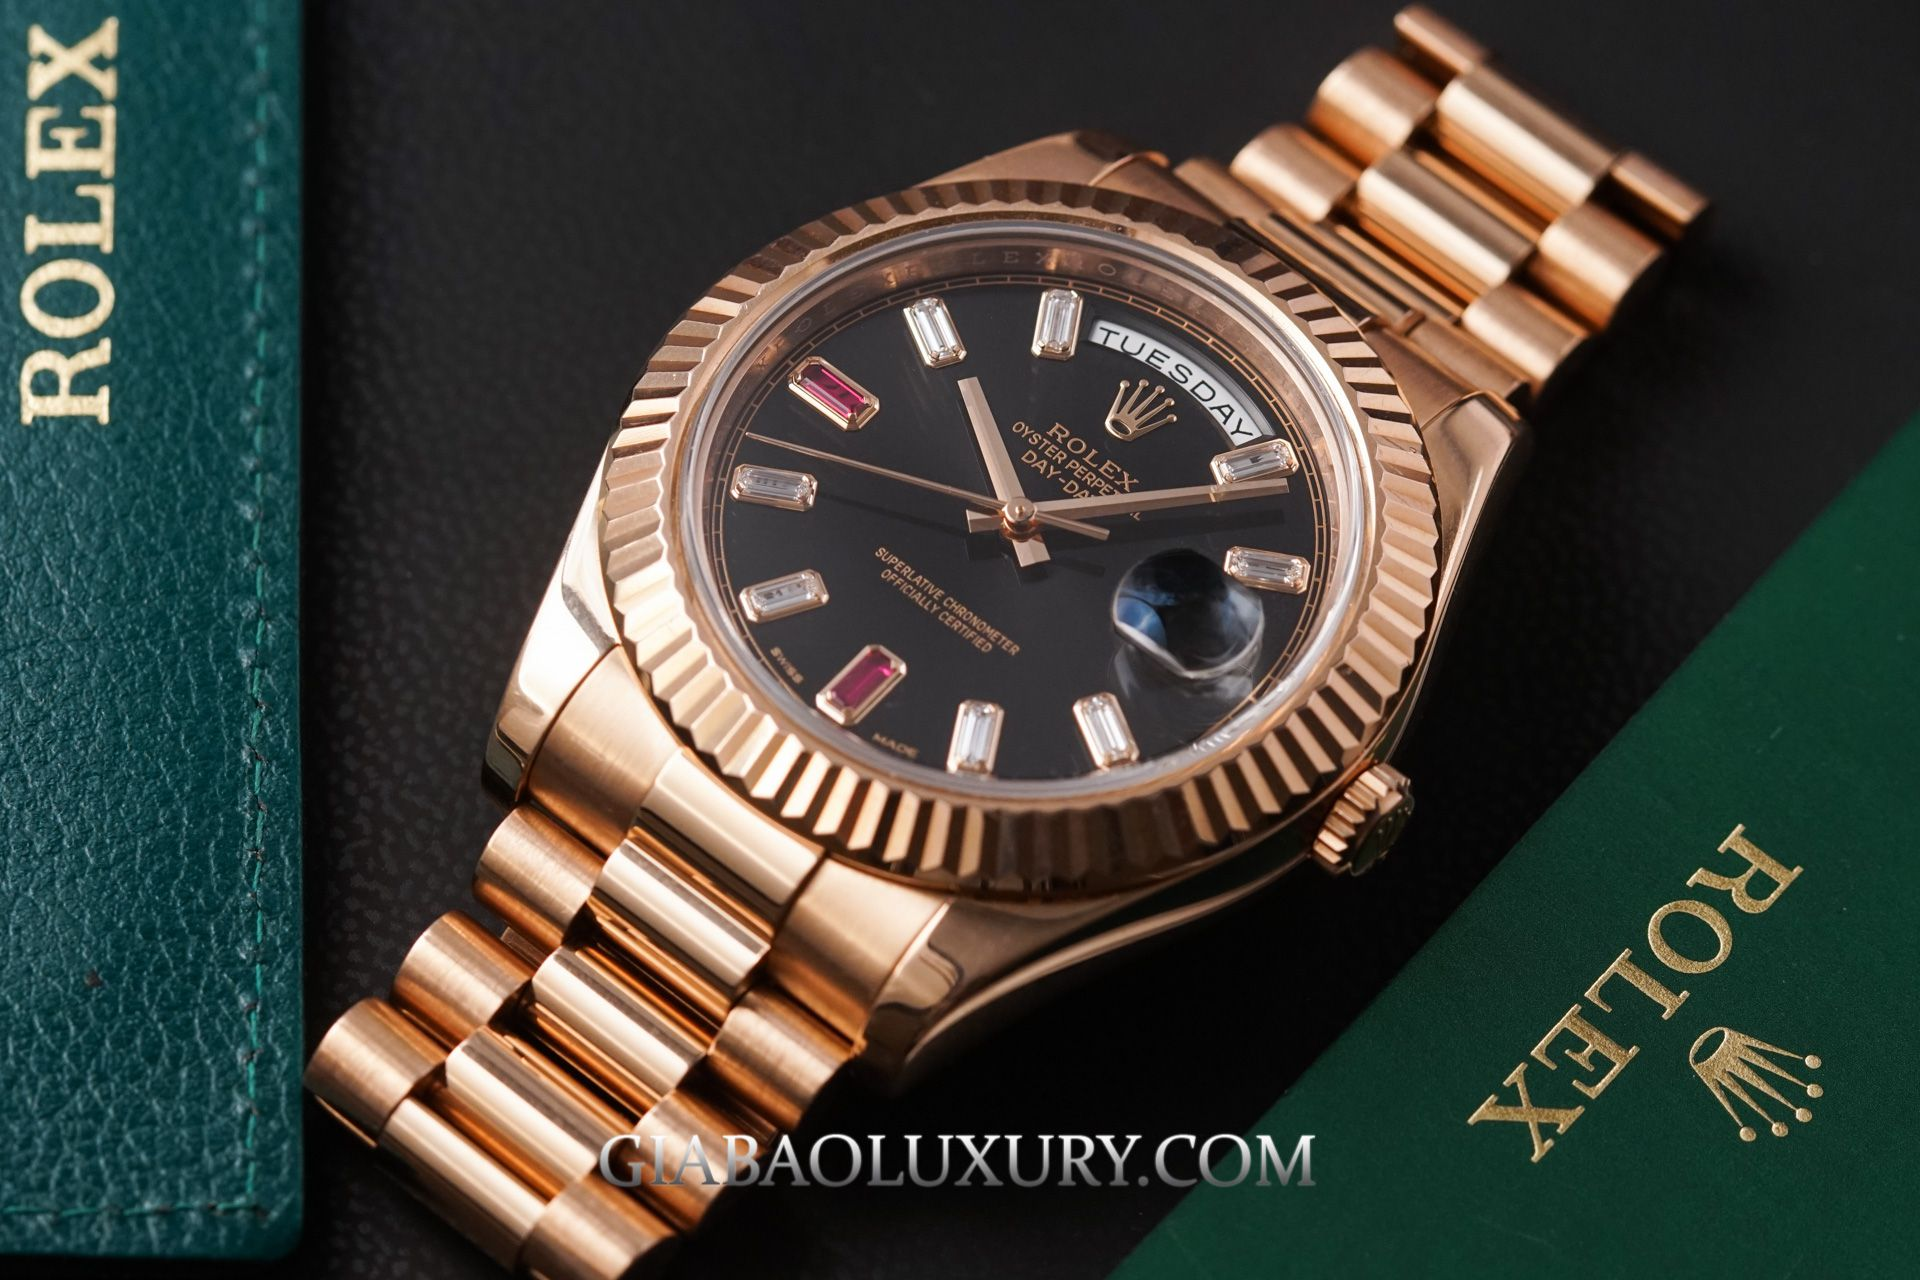 Review Đồng Hồ Rolex Day-Date 218235 Mặt Số Đen